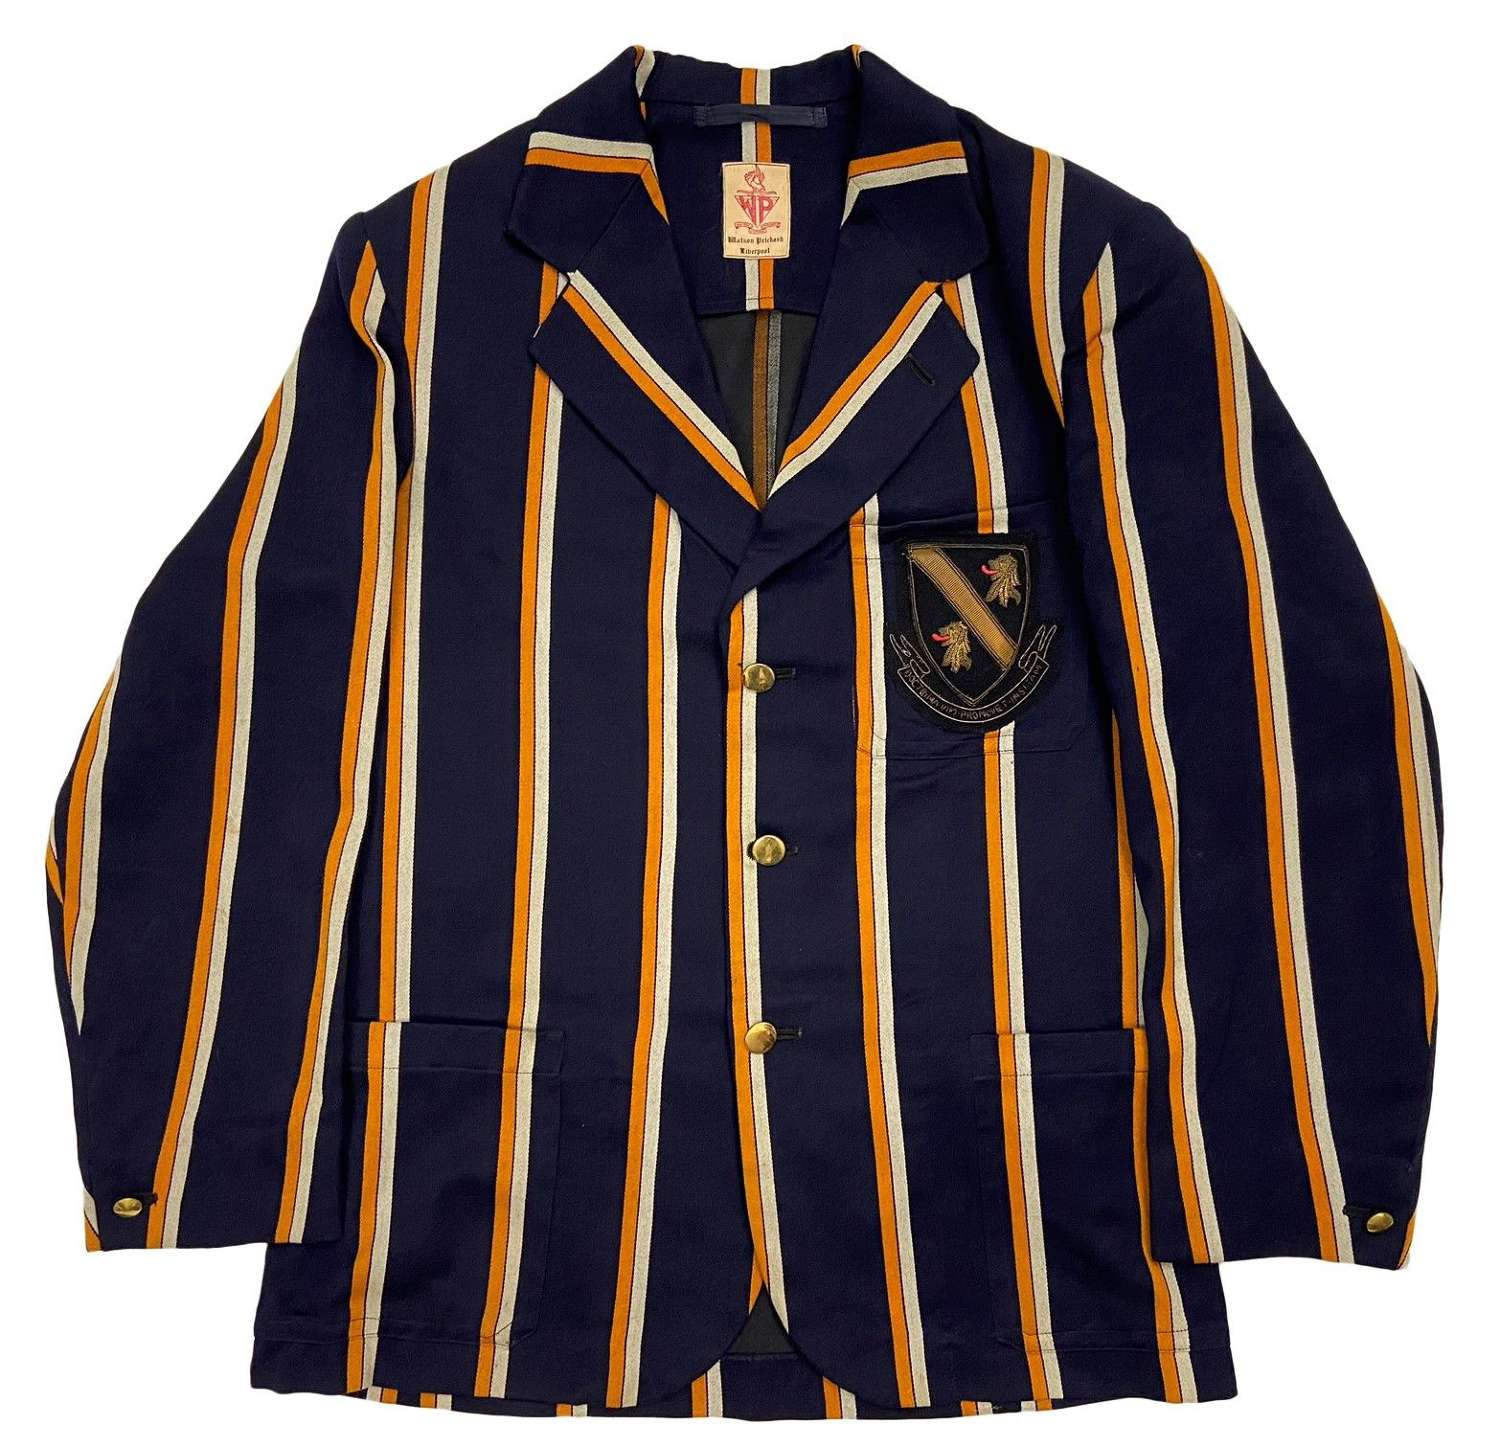 Original 1940s Striped School / College Boating Blazer